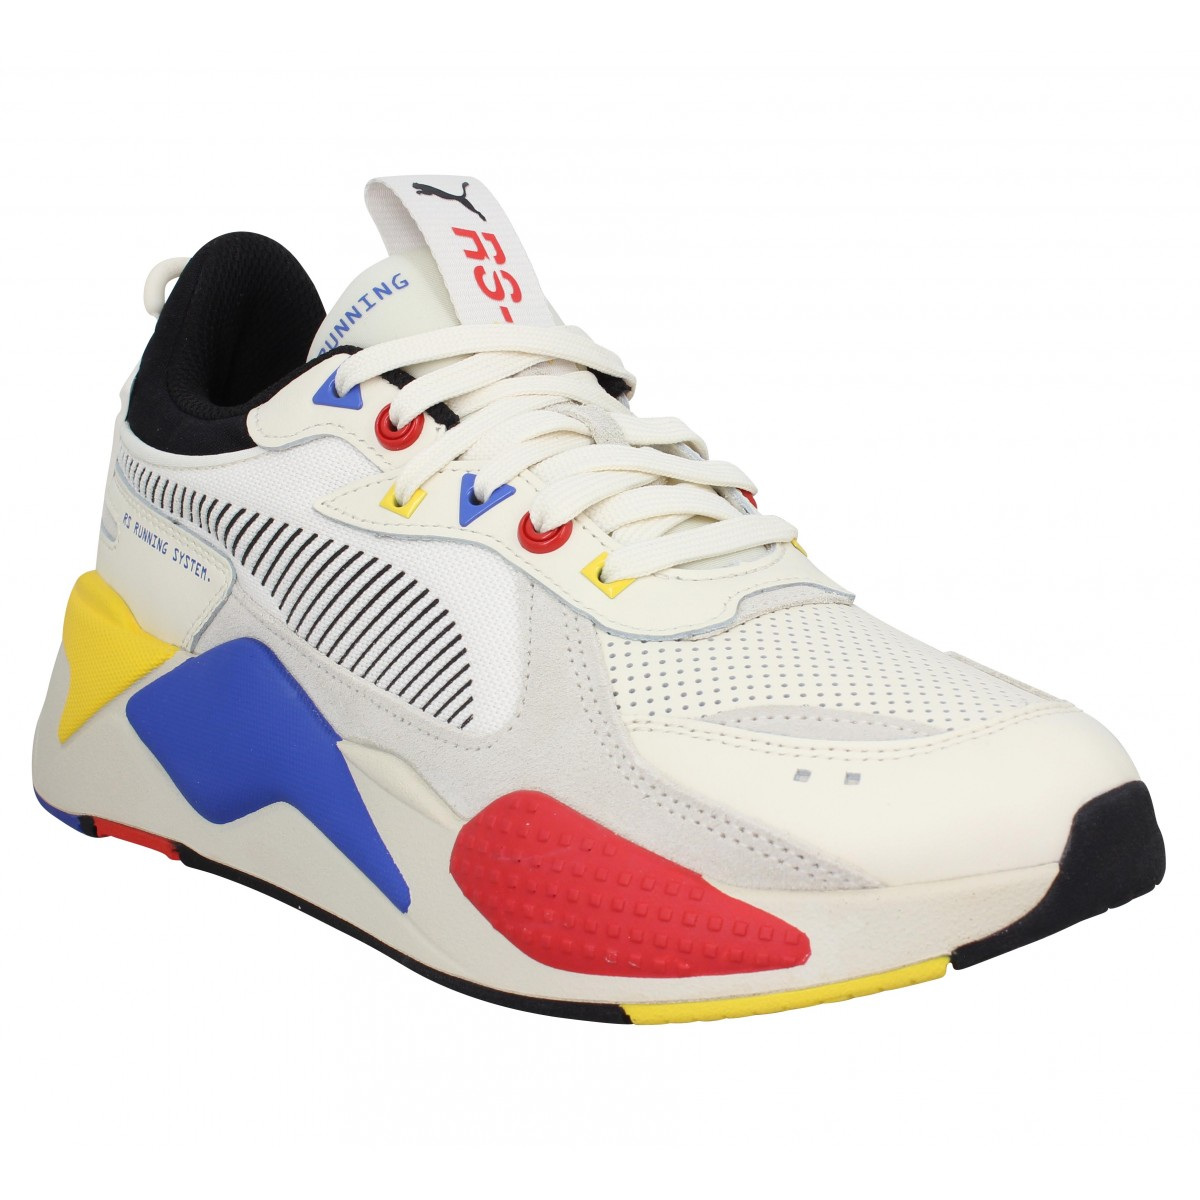 Baskets PUMA RS-X Colour Theory toile Homme Blanc